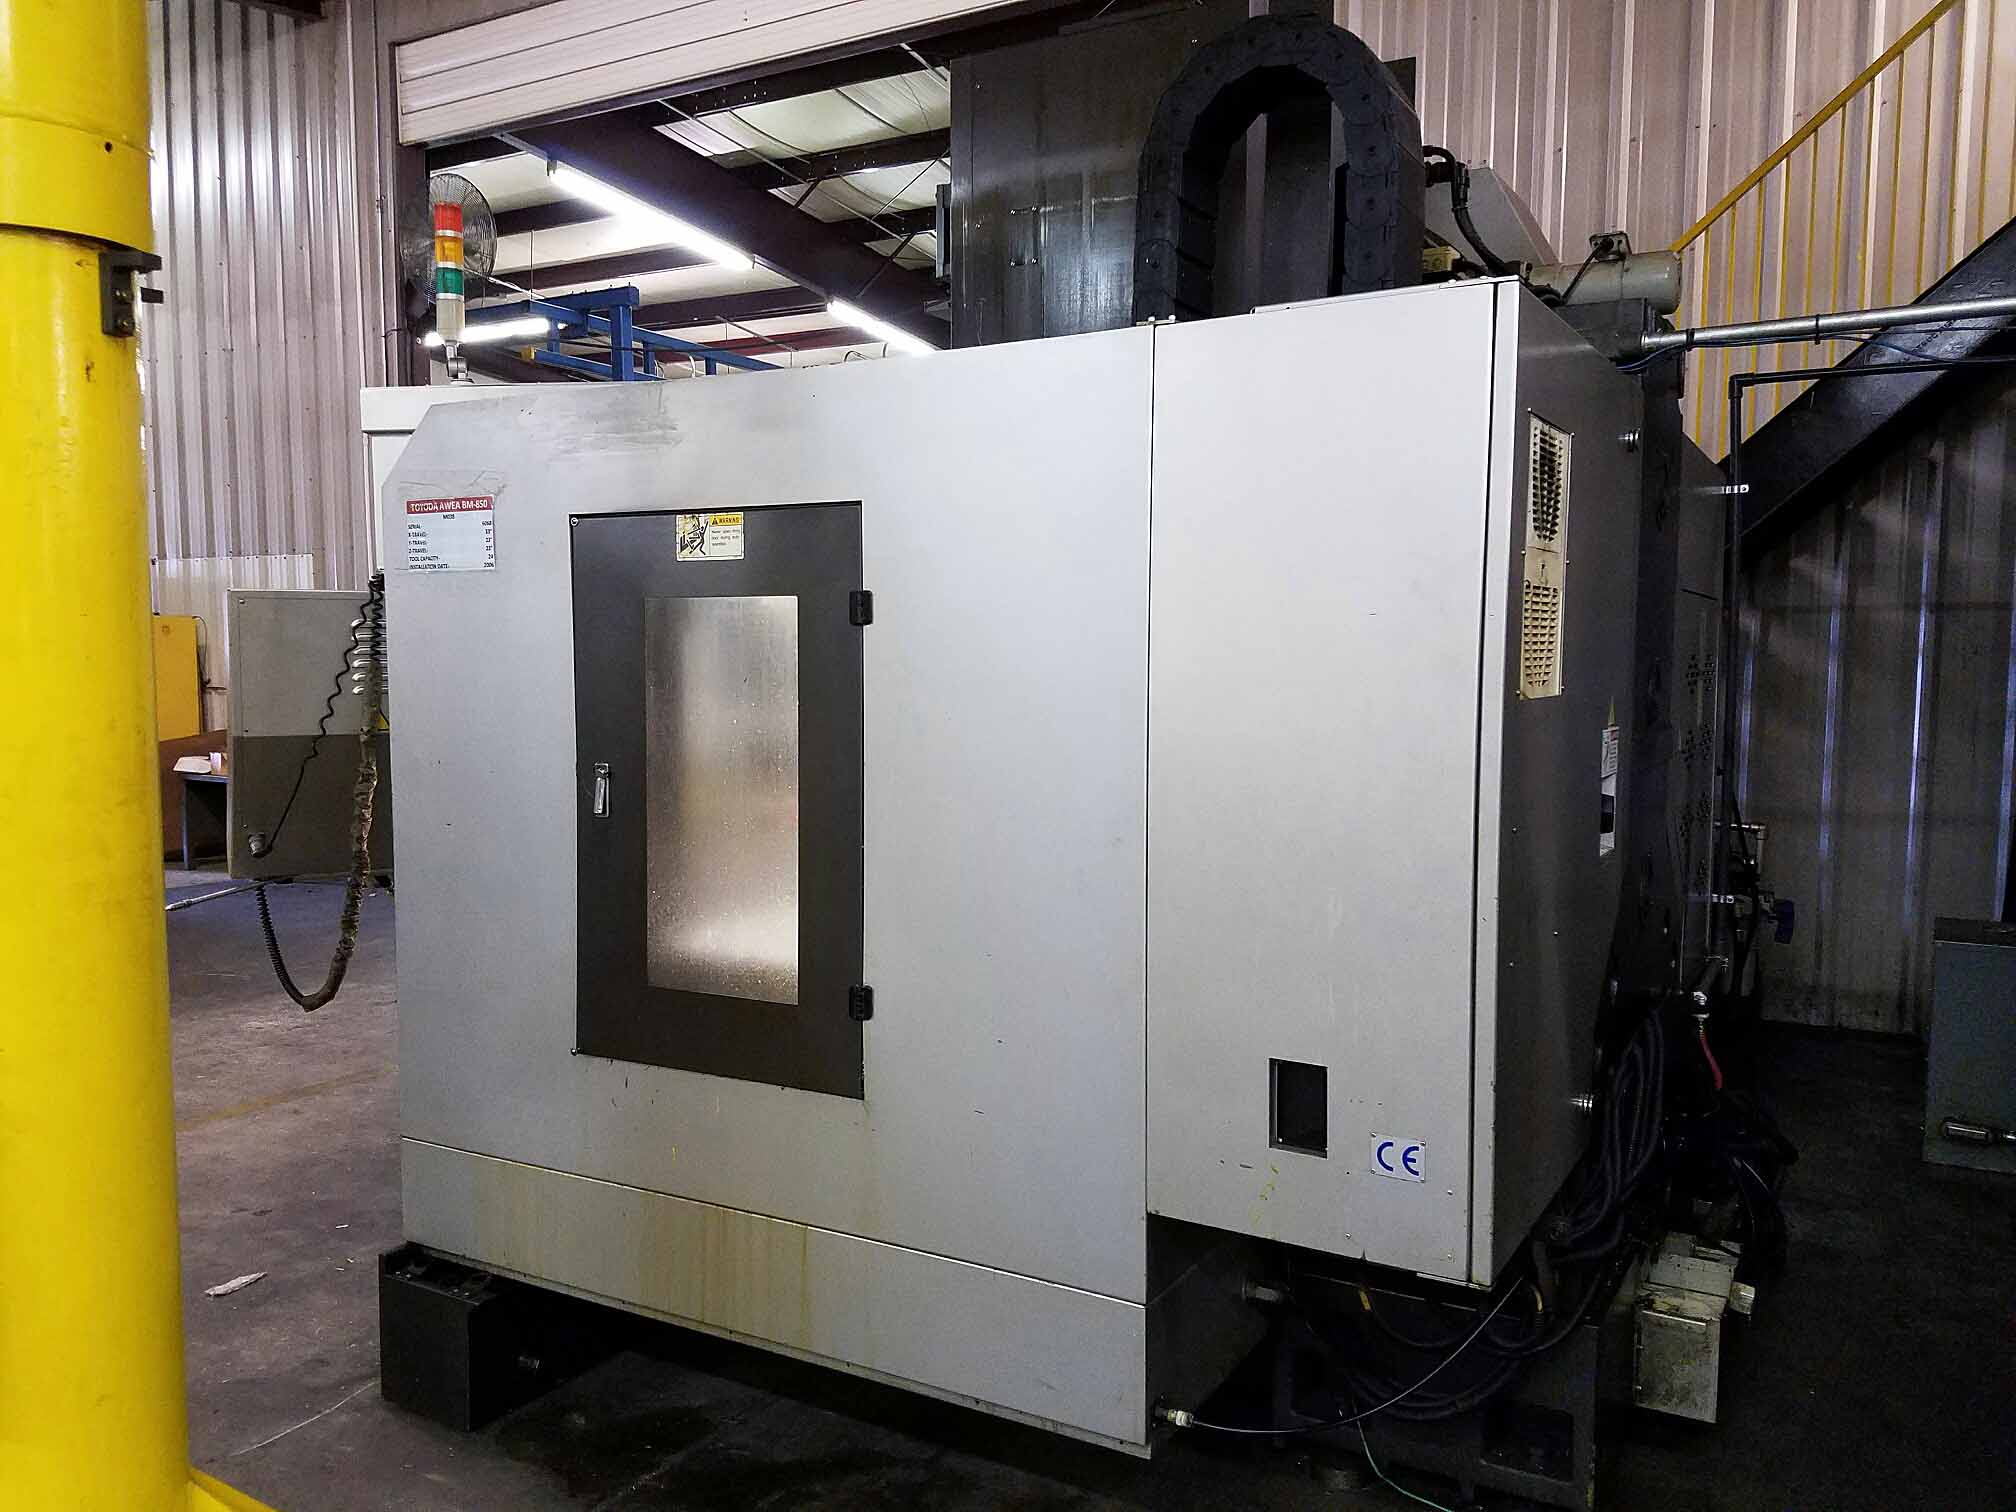 Lot 10 - VERTICAL MACHINING CENTER, TOYODA AWEA MDL. BM-850, new 2006, Fanuc Series 18i-MB CNC control, 33""